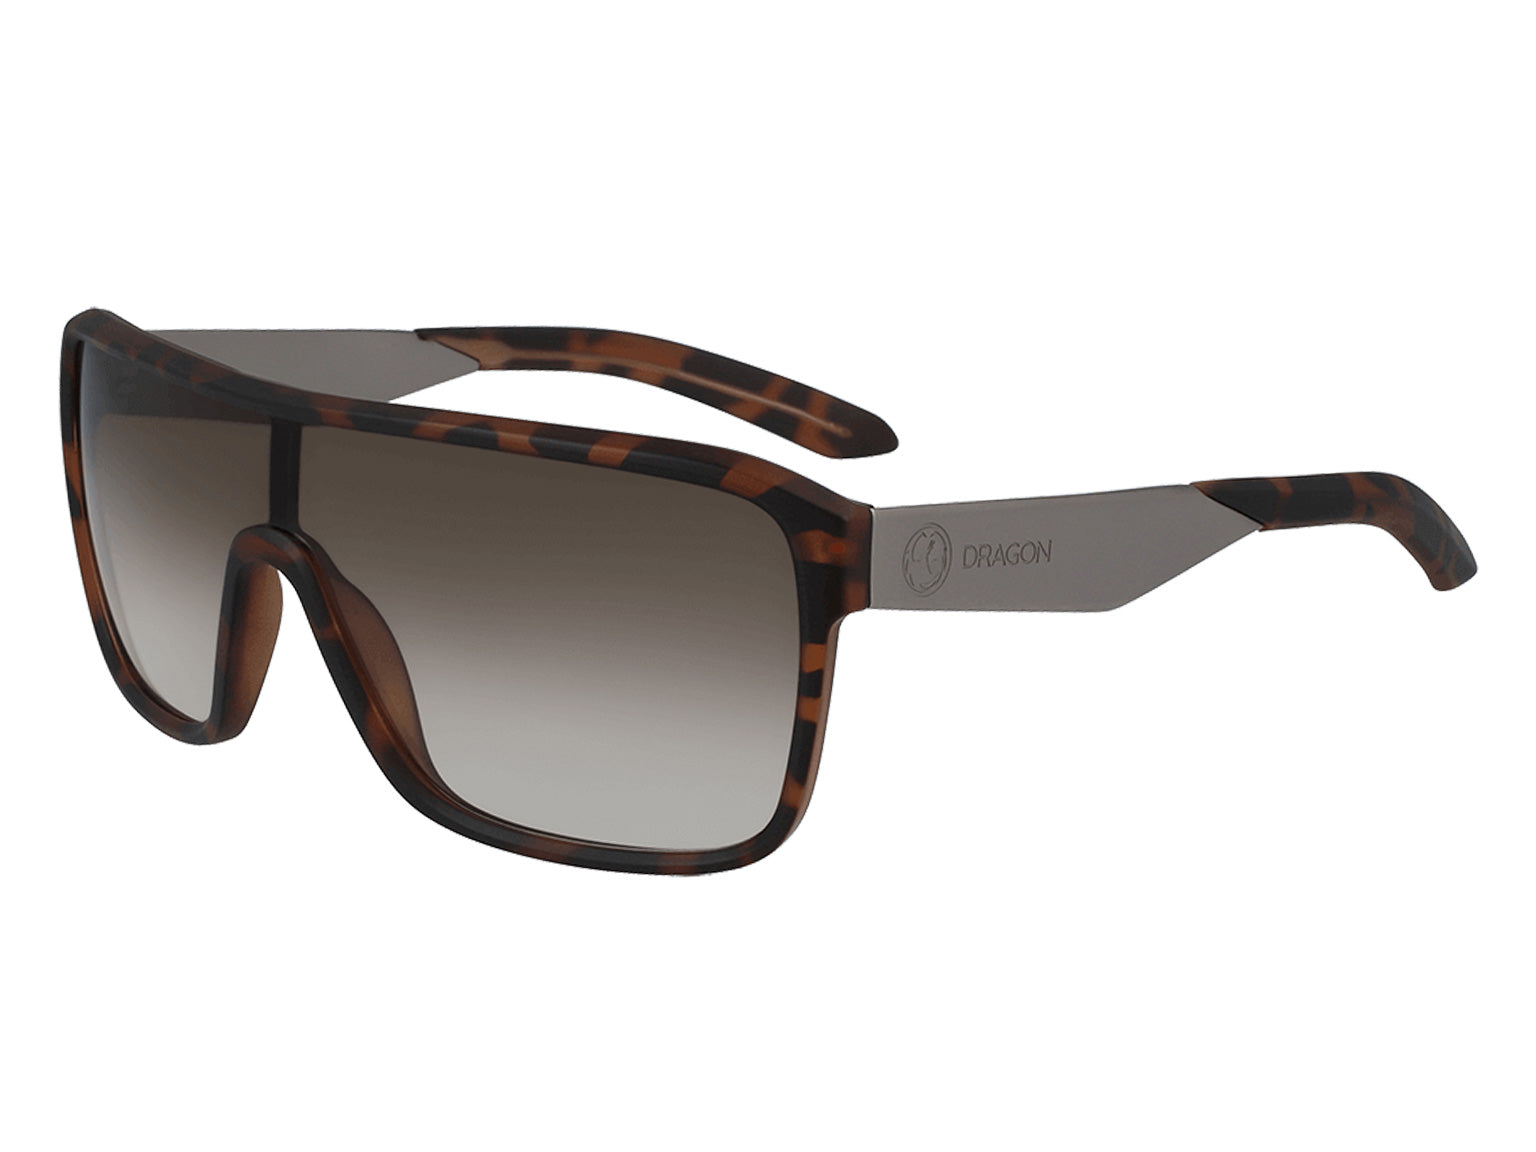 AMP - Matte Tortoise ; with Lumalens Brown Gradient Lens